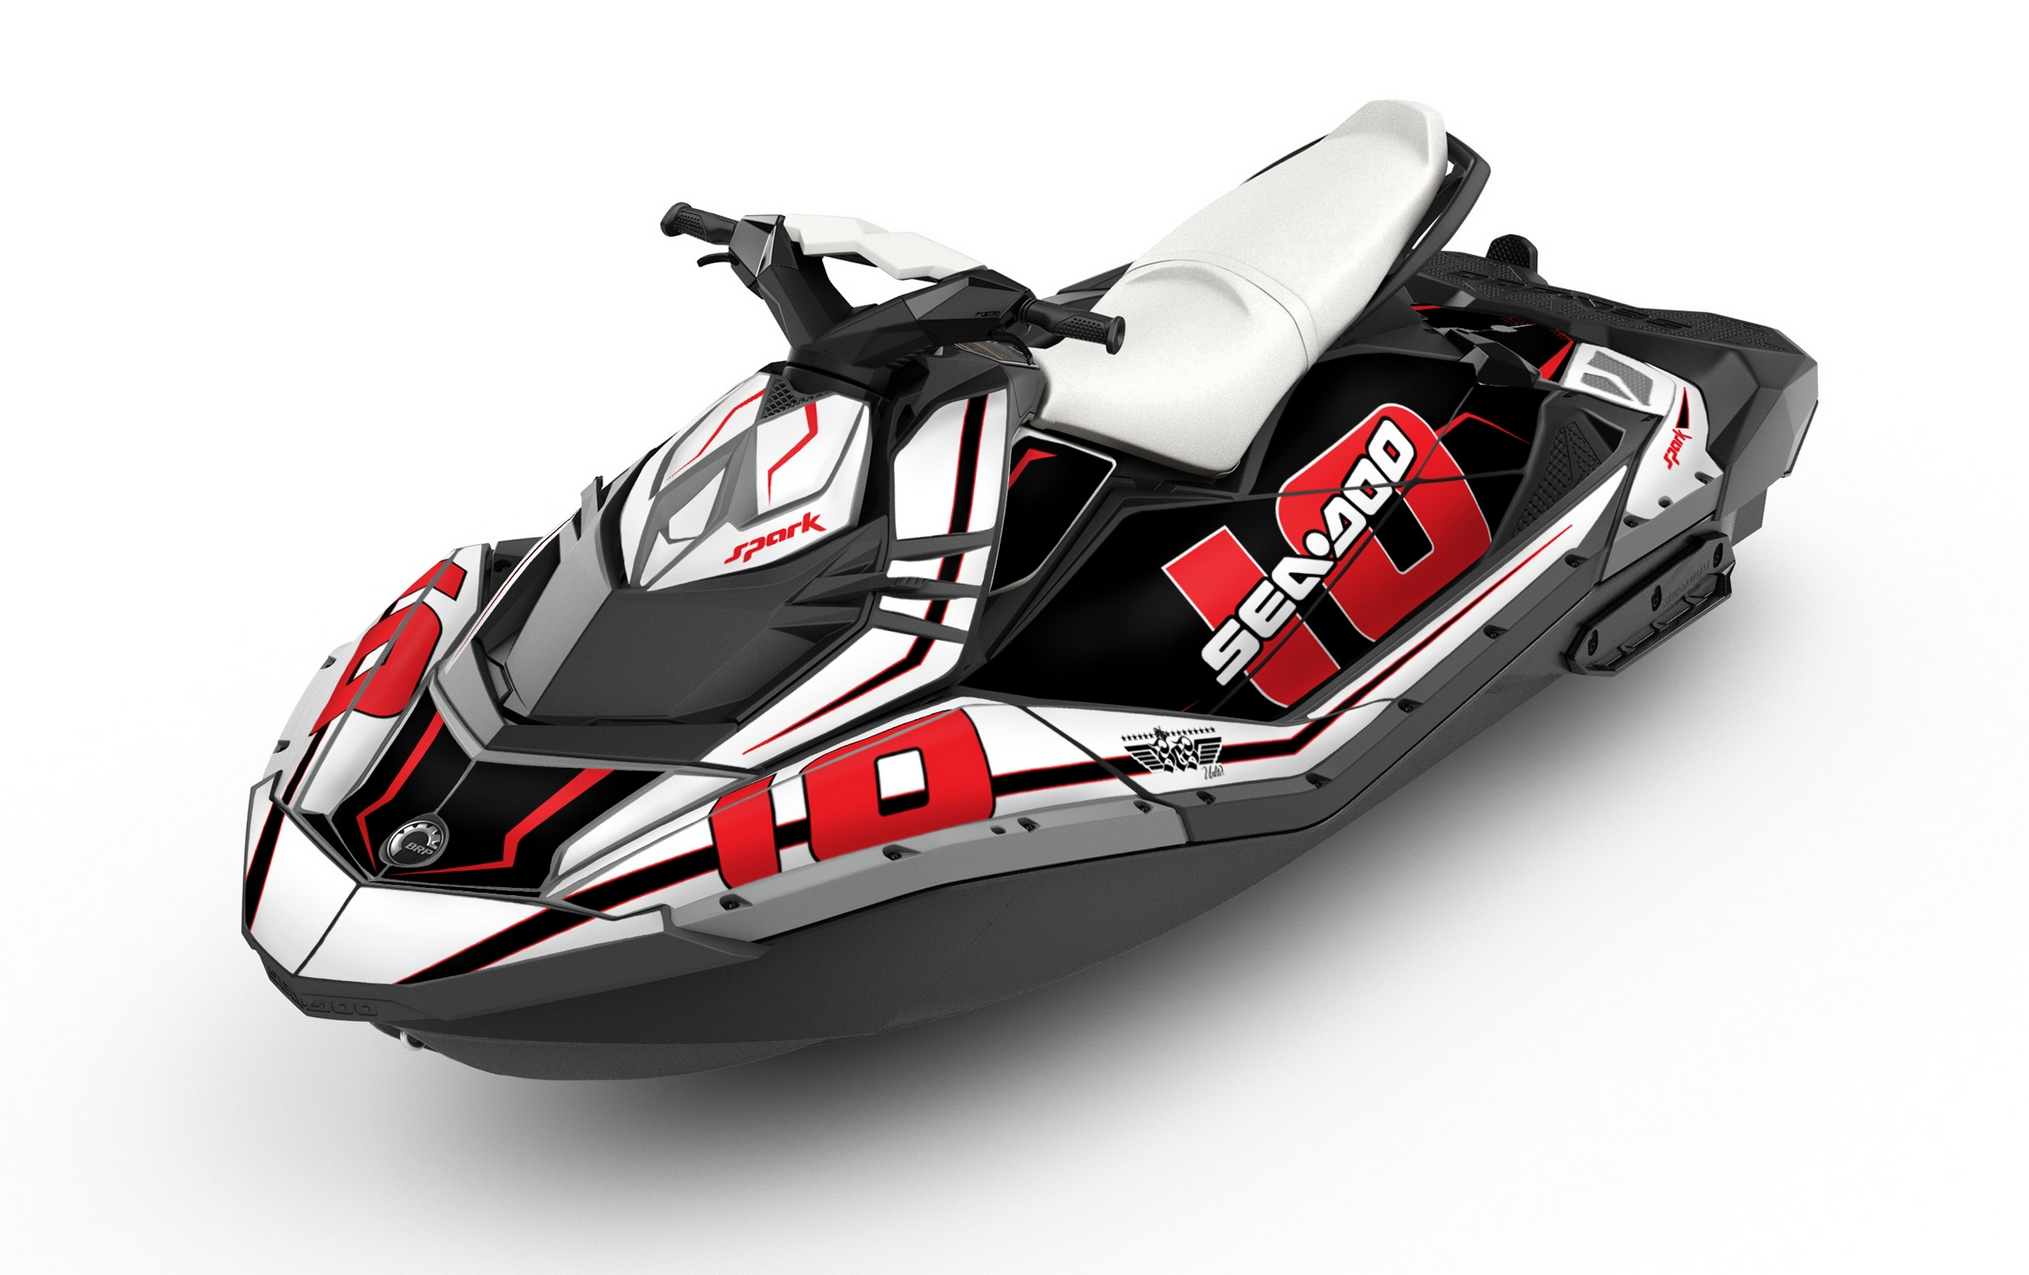 Sea Doo Debuts Spark The Budget Friendly Skijet